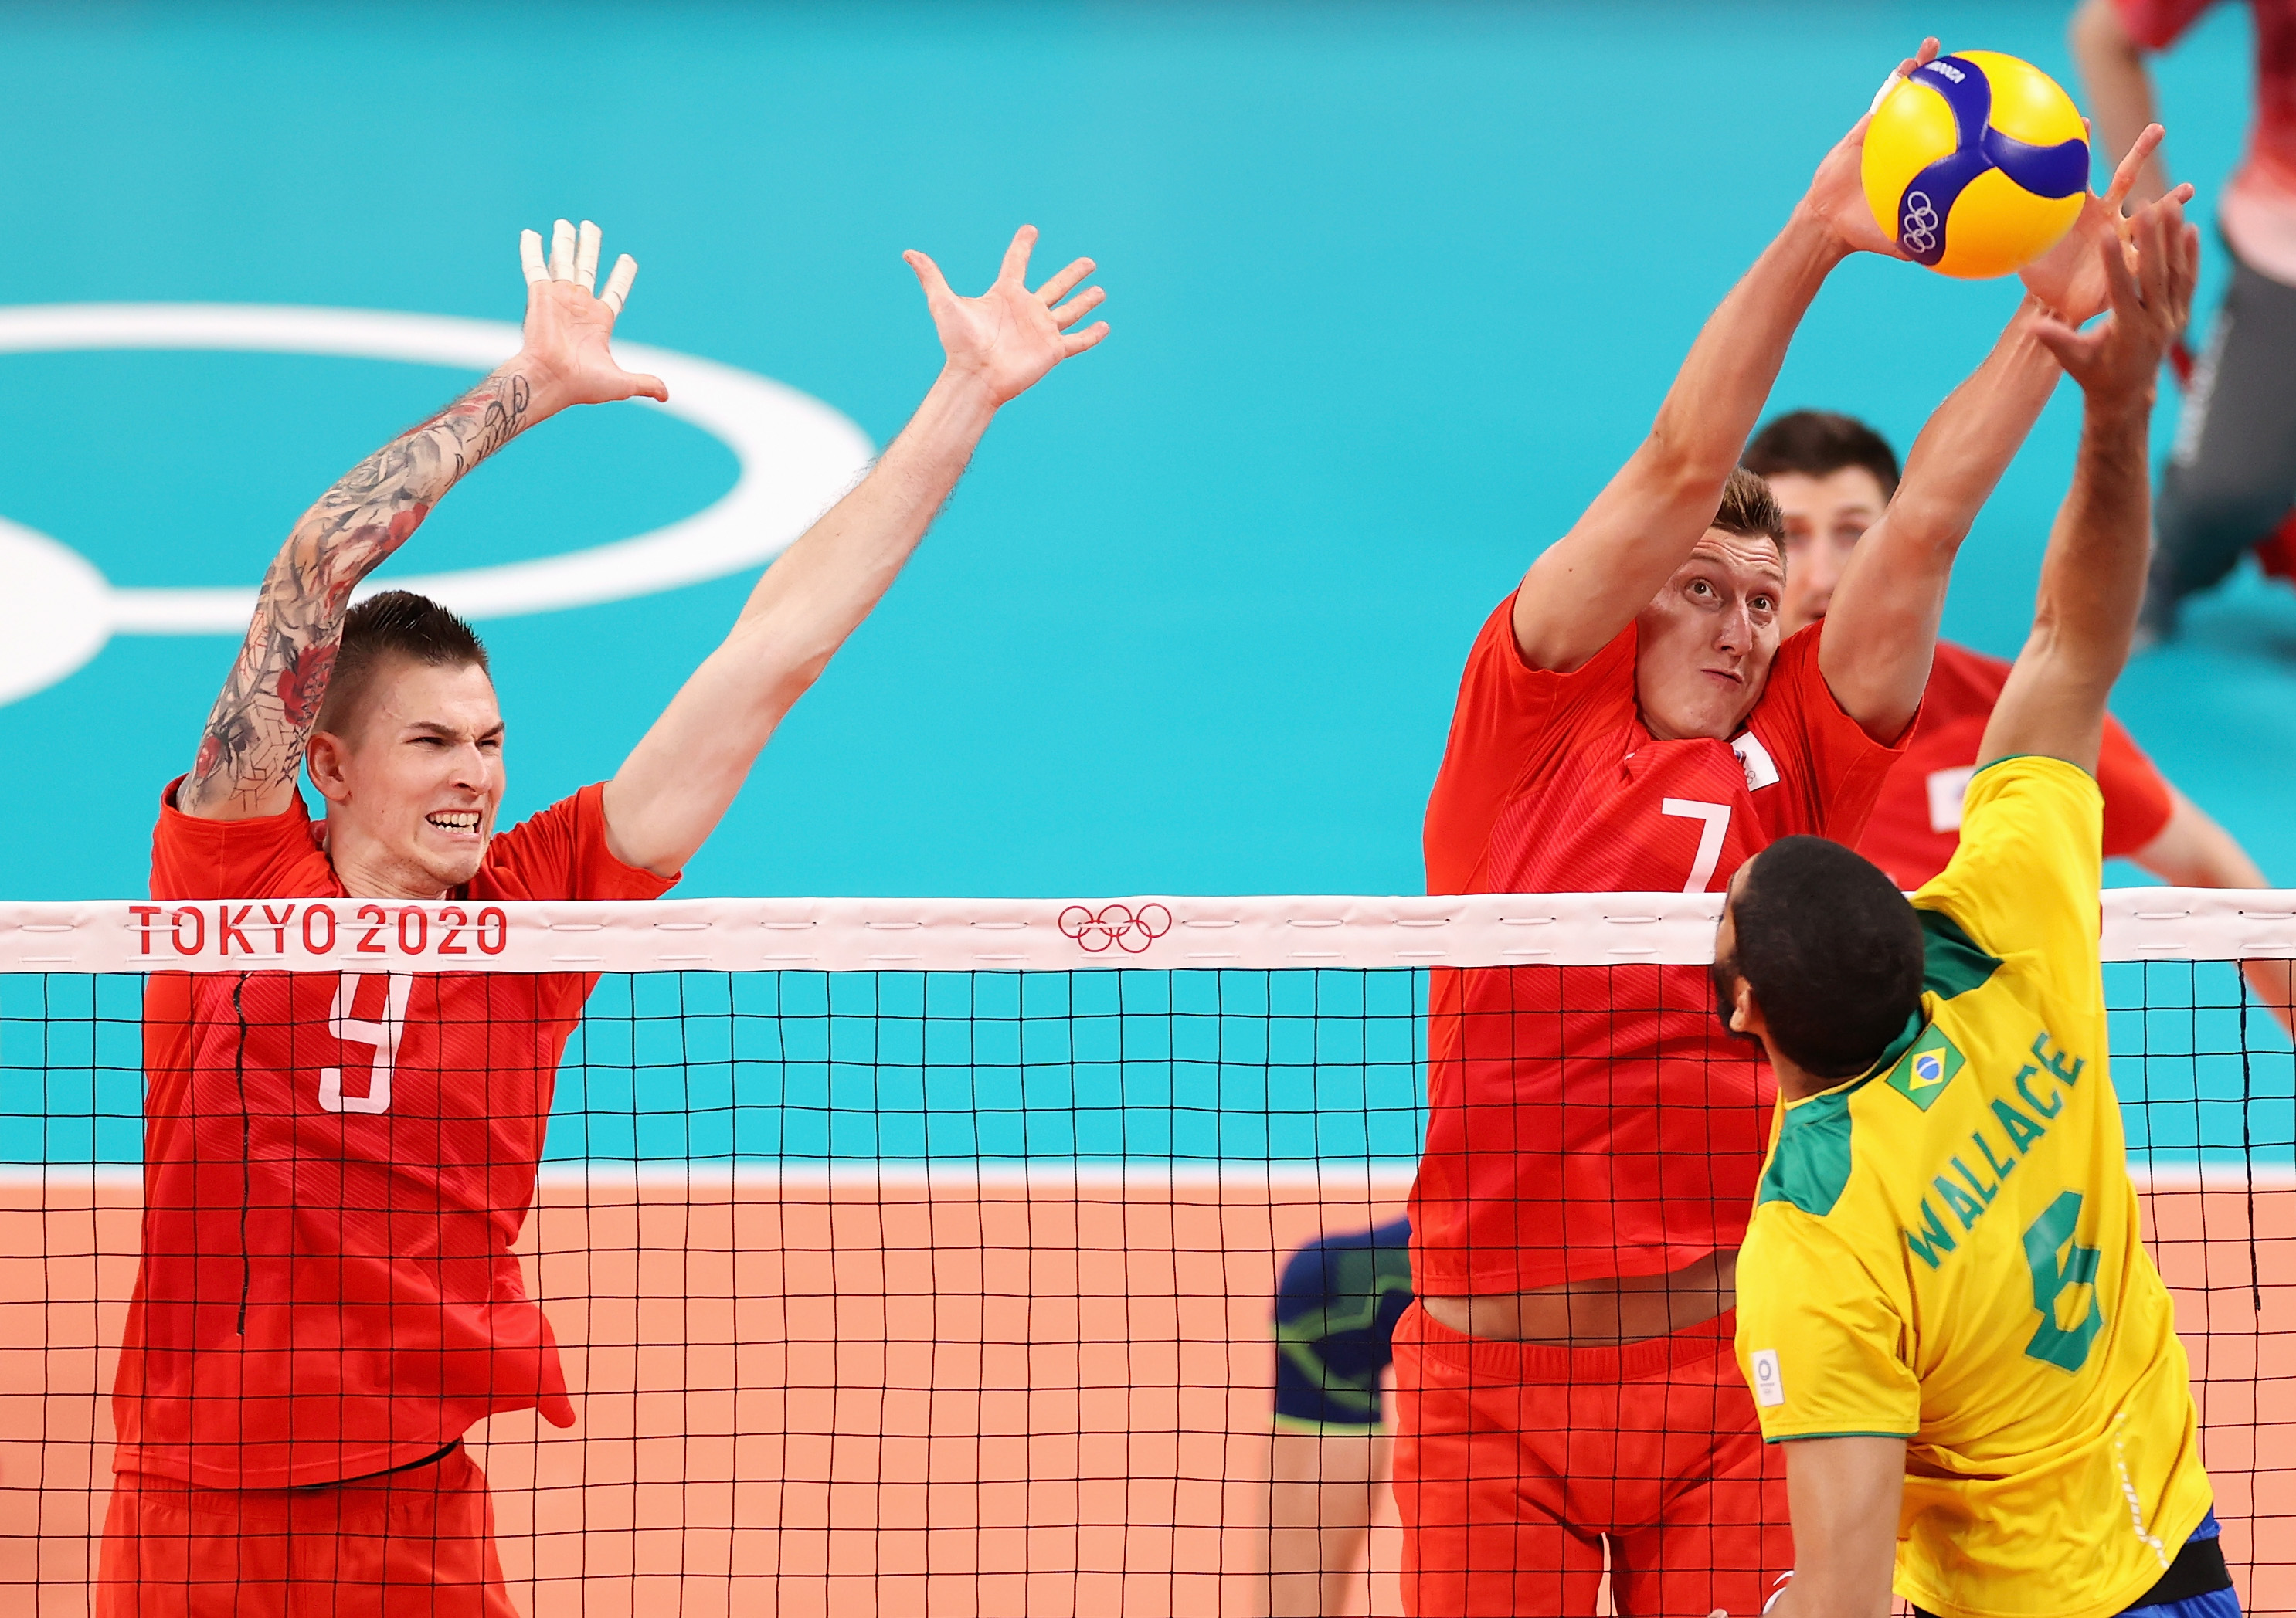 Wallace de Souza #8 of Team Brazil competes against Ivan Iakovlev #9 and Dmitry Volkov #7 of Team ROC during the Men's Preliminary Round - Pool B volleyball on day five of the Tokyo 2020 Olympic Games at Ariake Arena on July 28, 2021 in Tokyo, Japan.